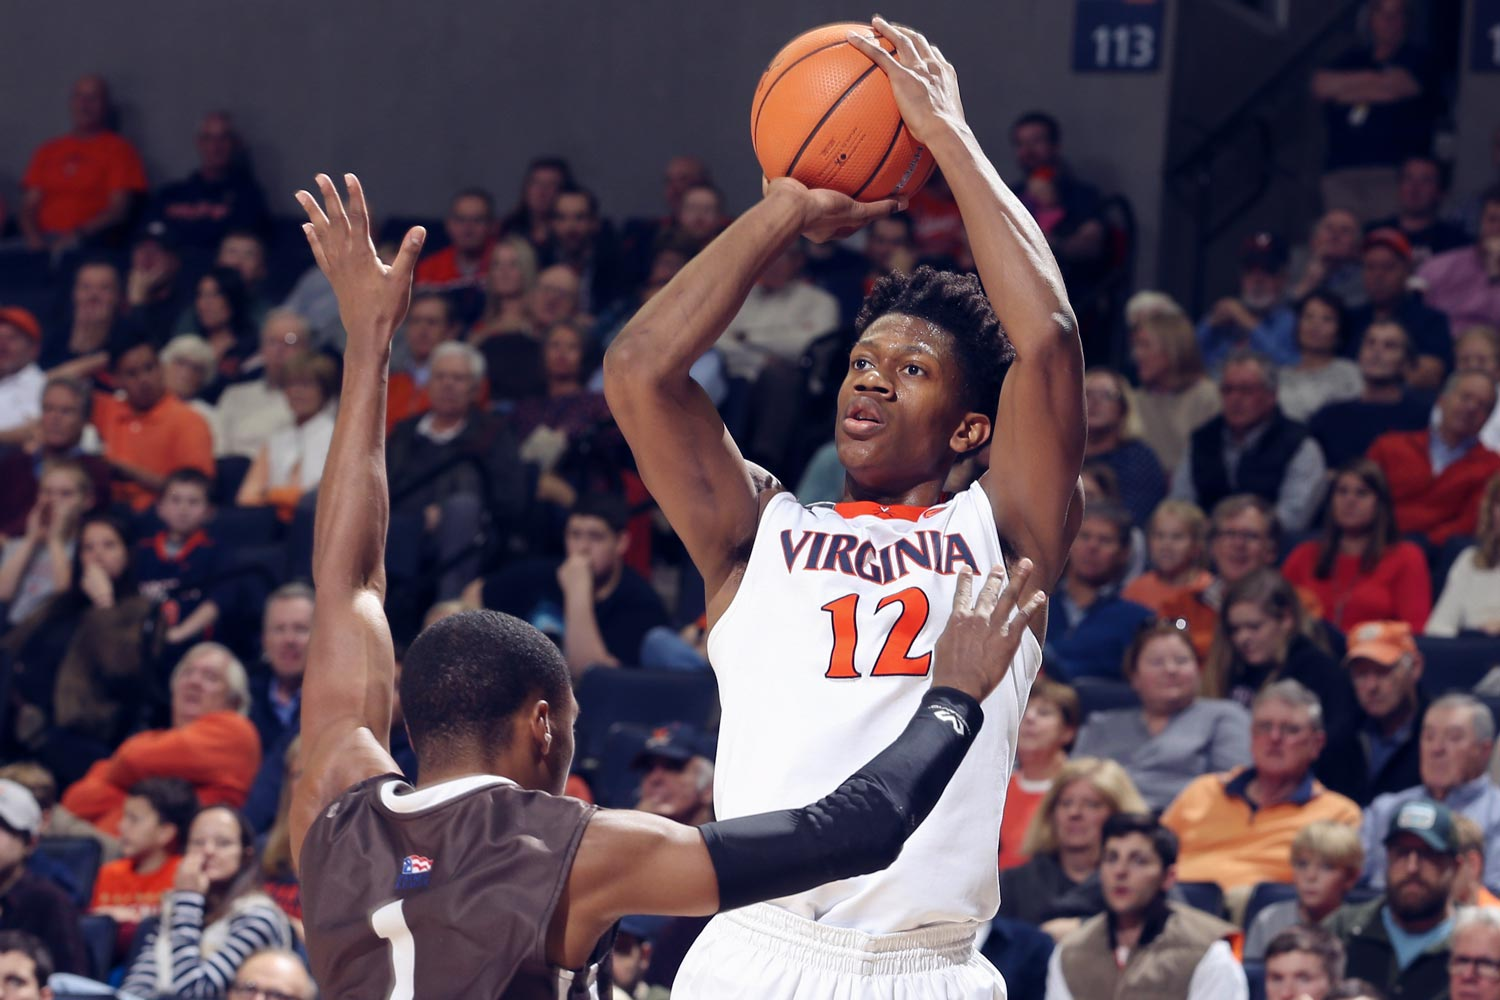 Some NBA observers thought De'Andre Hunter might be worthy of a first-round pick in this year's NBA draft, but he opted to stay at UVA for at least another season.